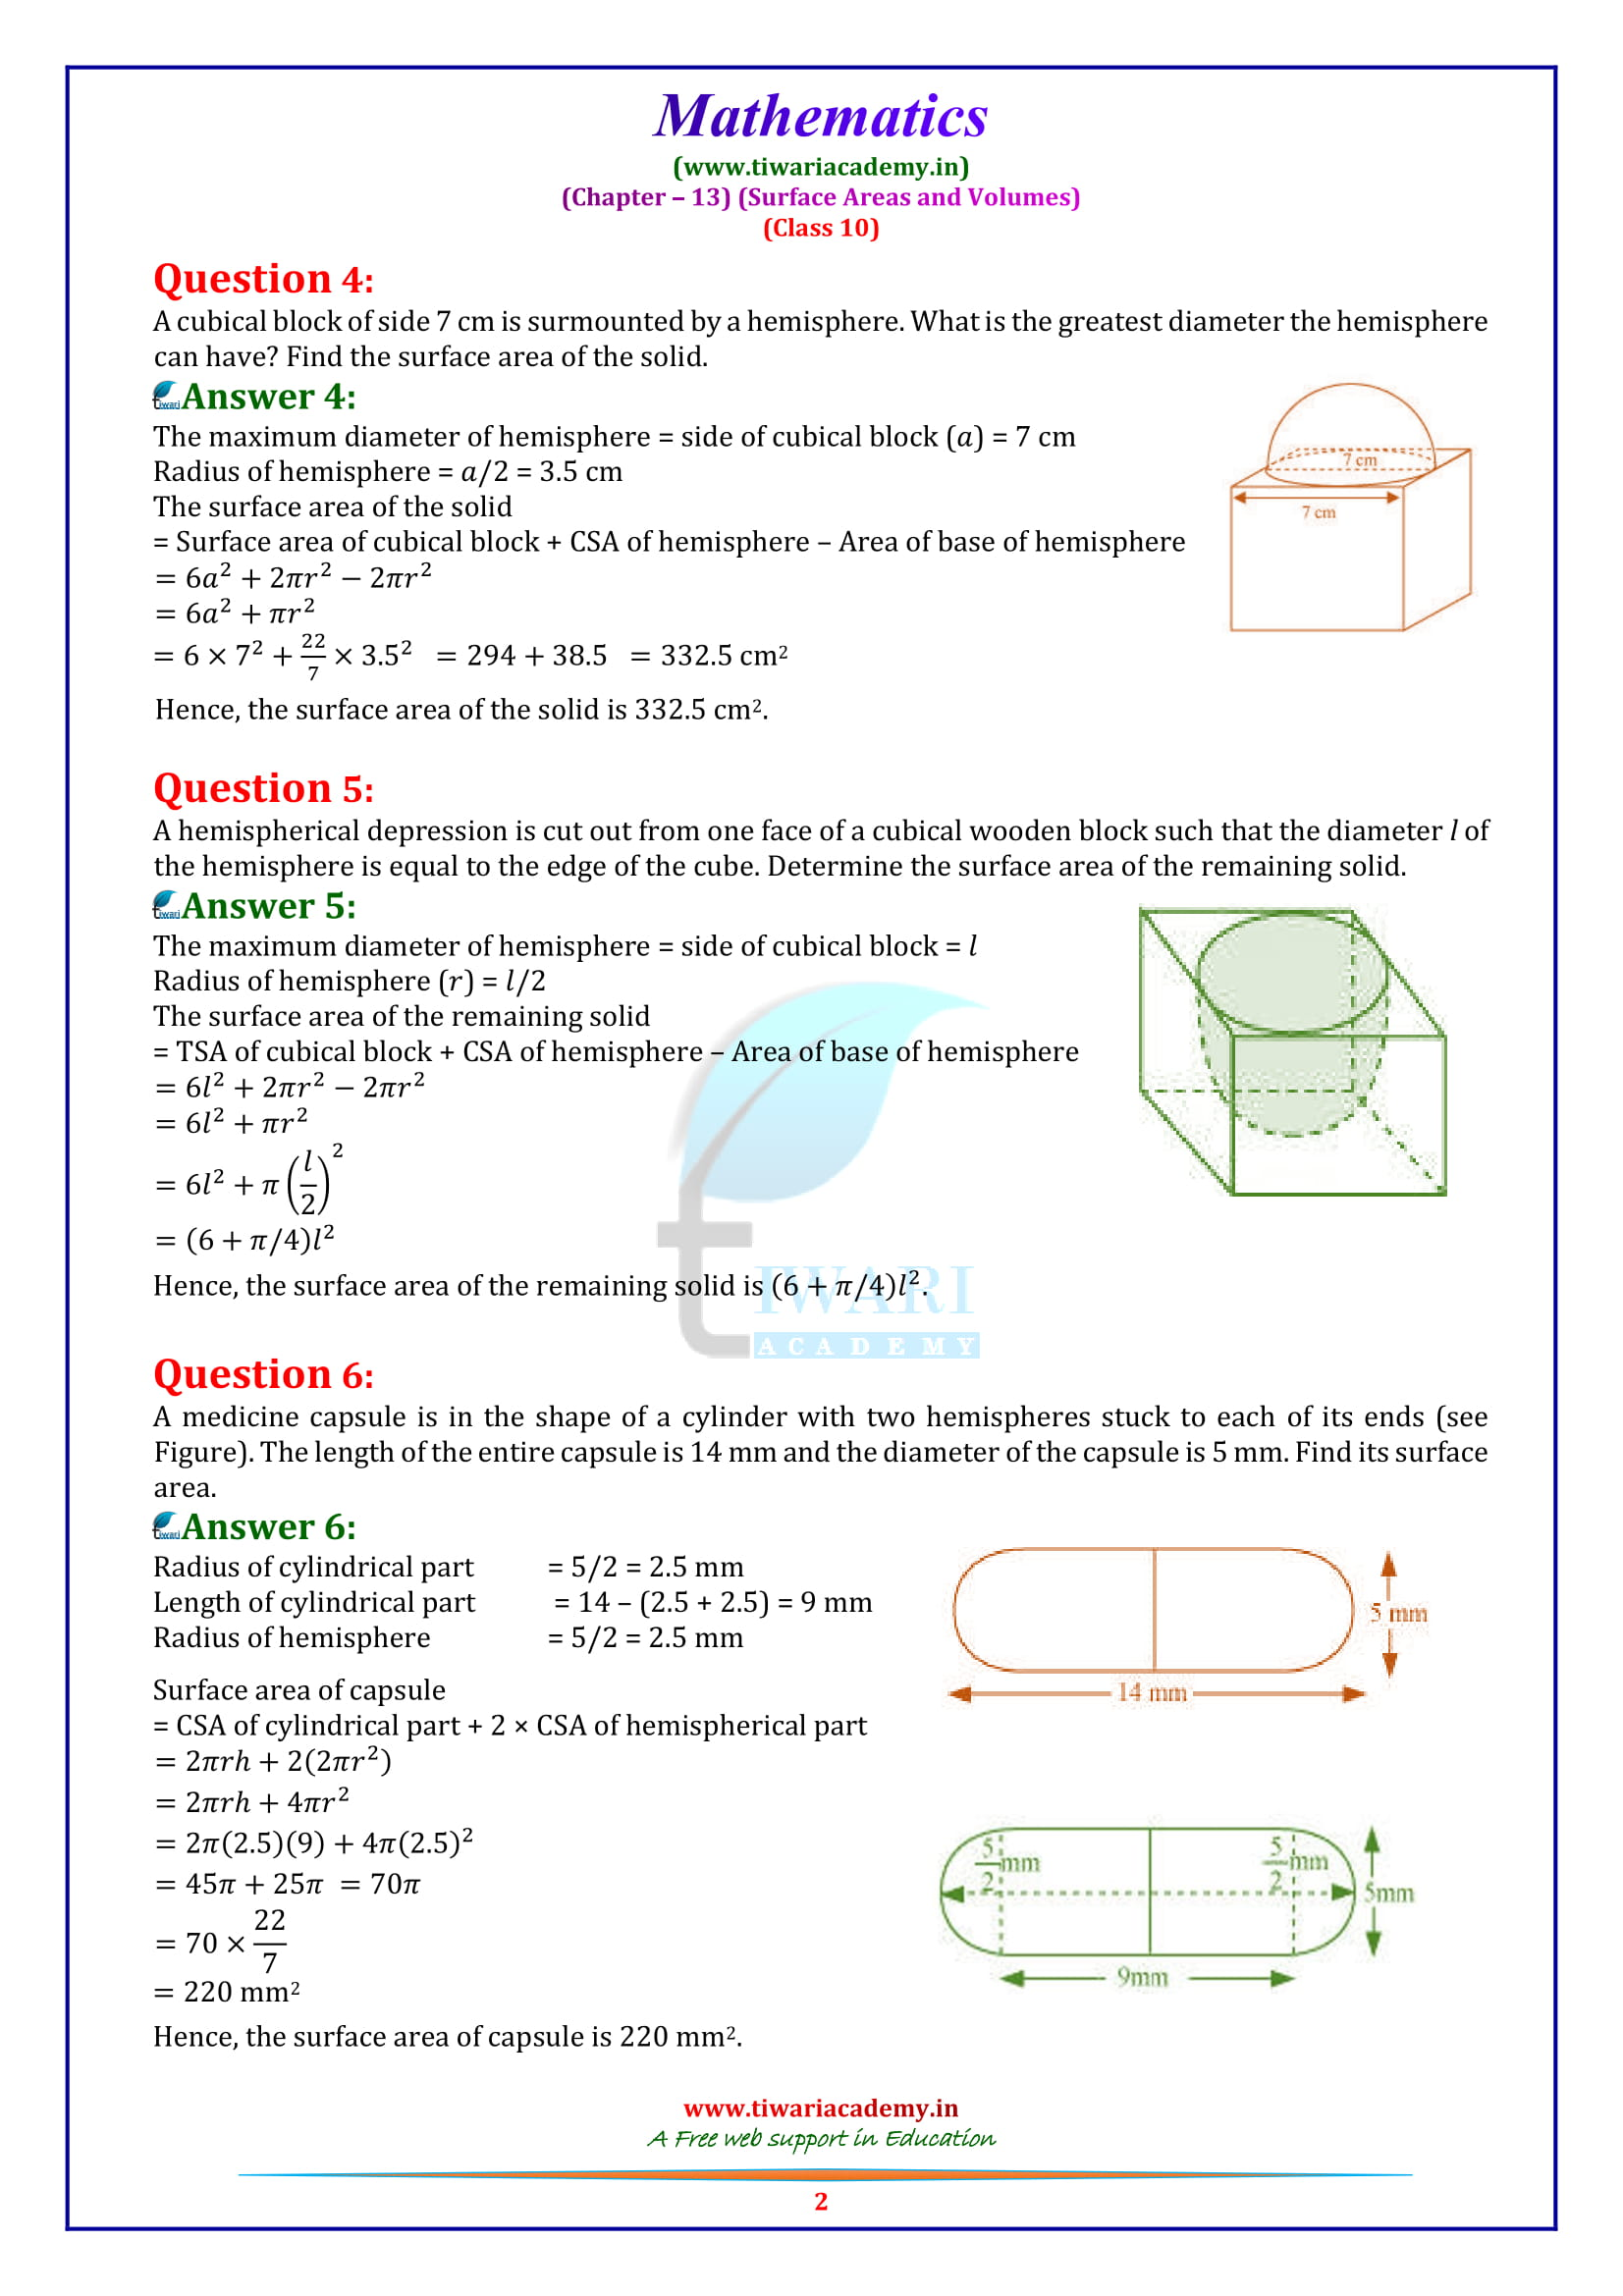 NCERT Solutions for Class 10 Maths Chapter 12 Exercise 13.1 question 1, 2,, 3, 4, 5, 6, 7, 8